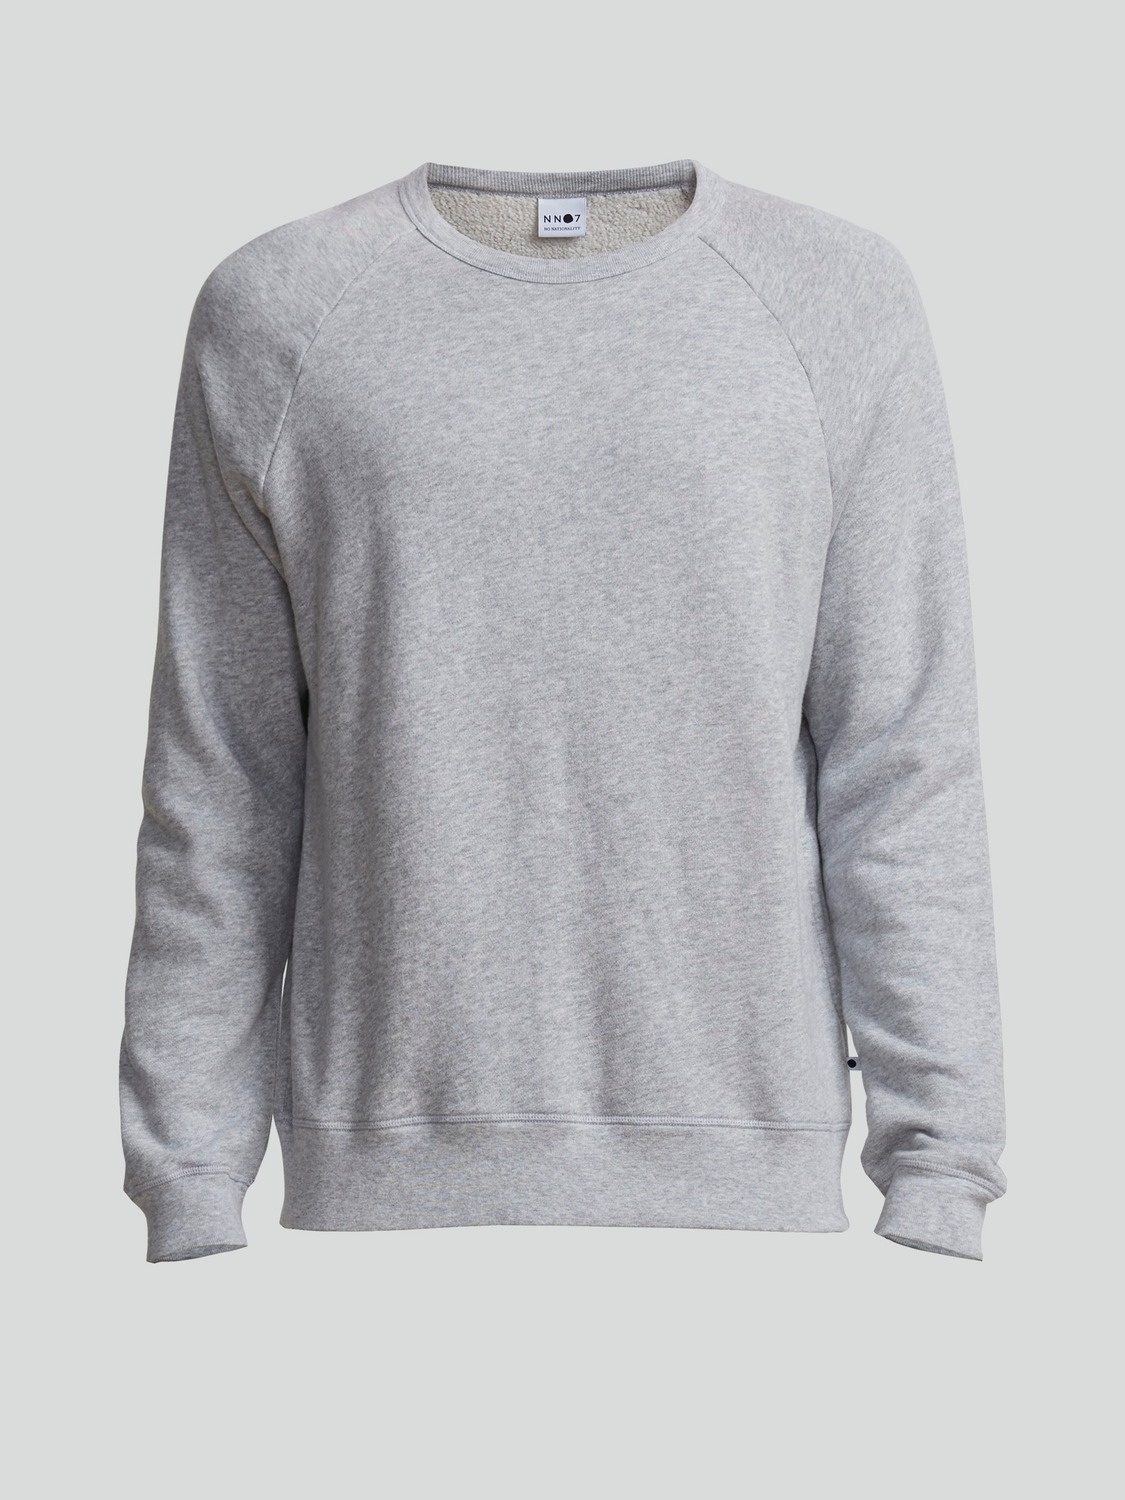 NN07 - Robin Sweat 3444 LT Grey | GATE36 Hobro